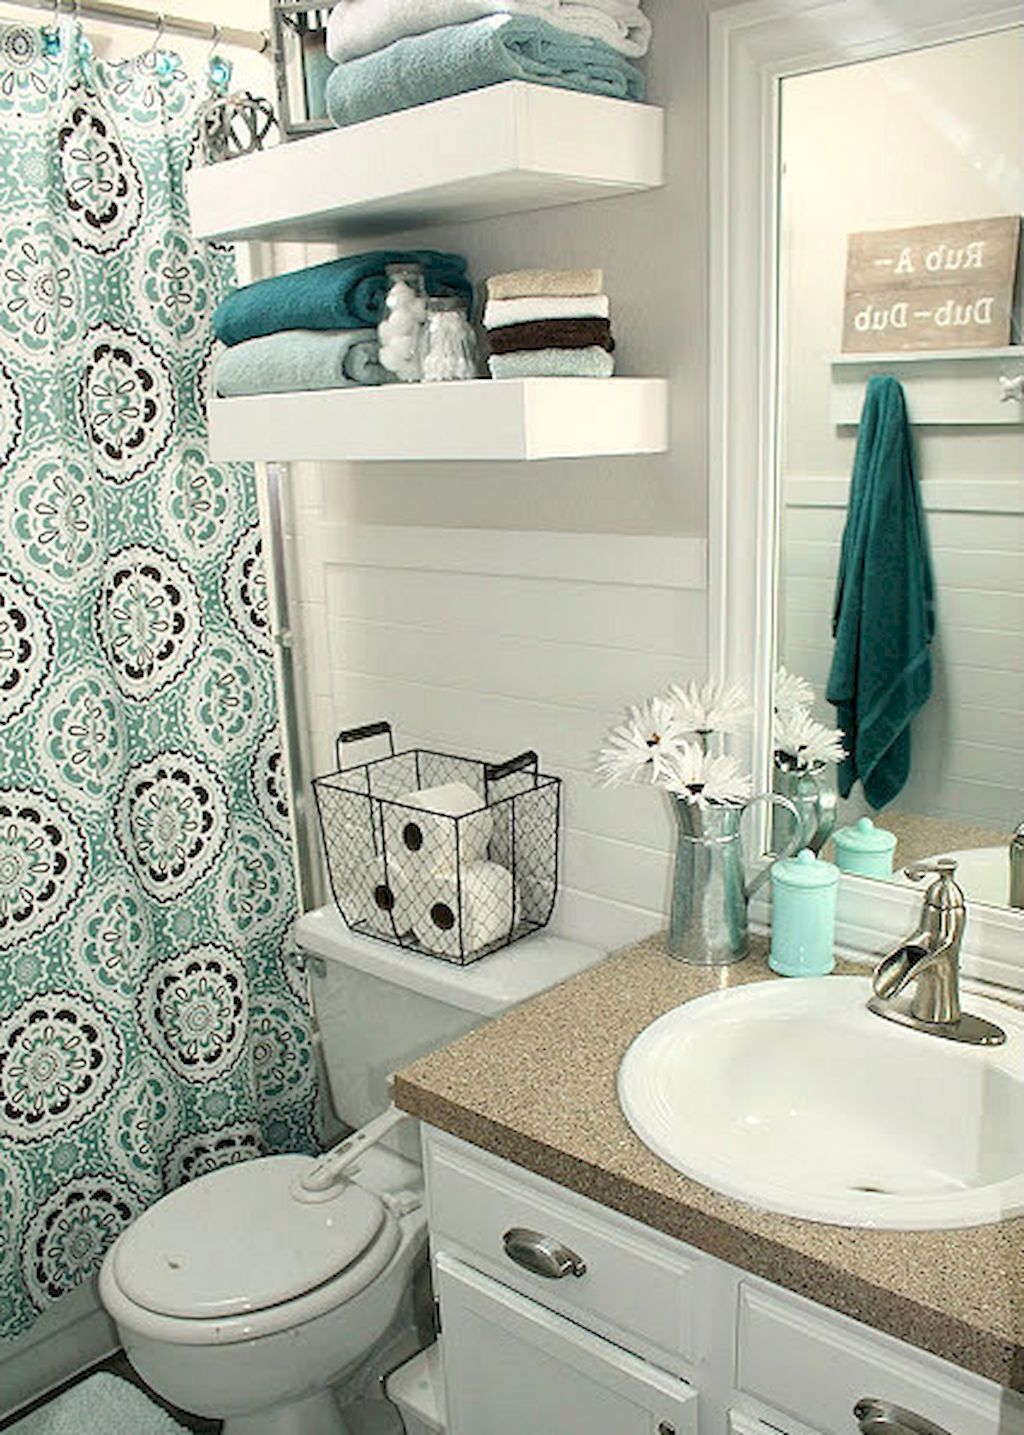 Adorable 30 diy small apartment decorating ideas on a - Bathroom decor ideas for small bathrooms ...